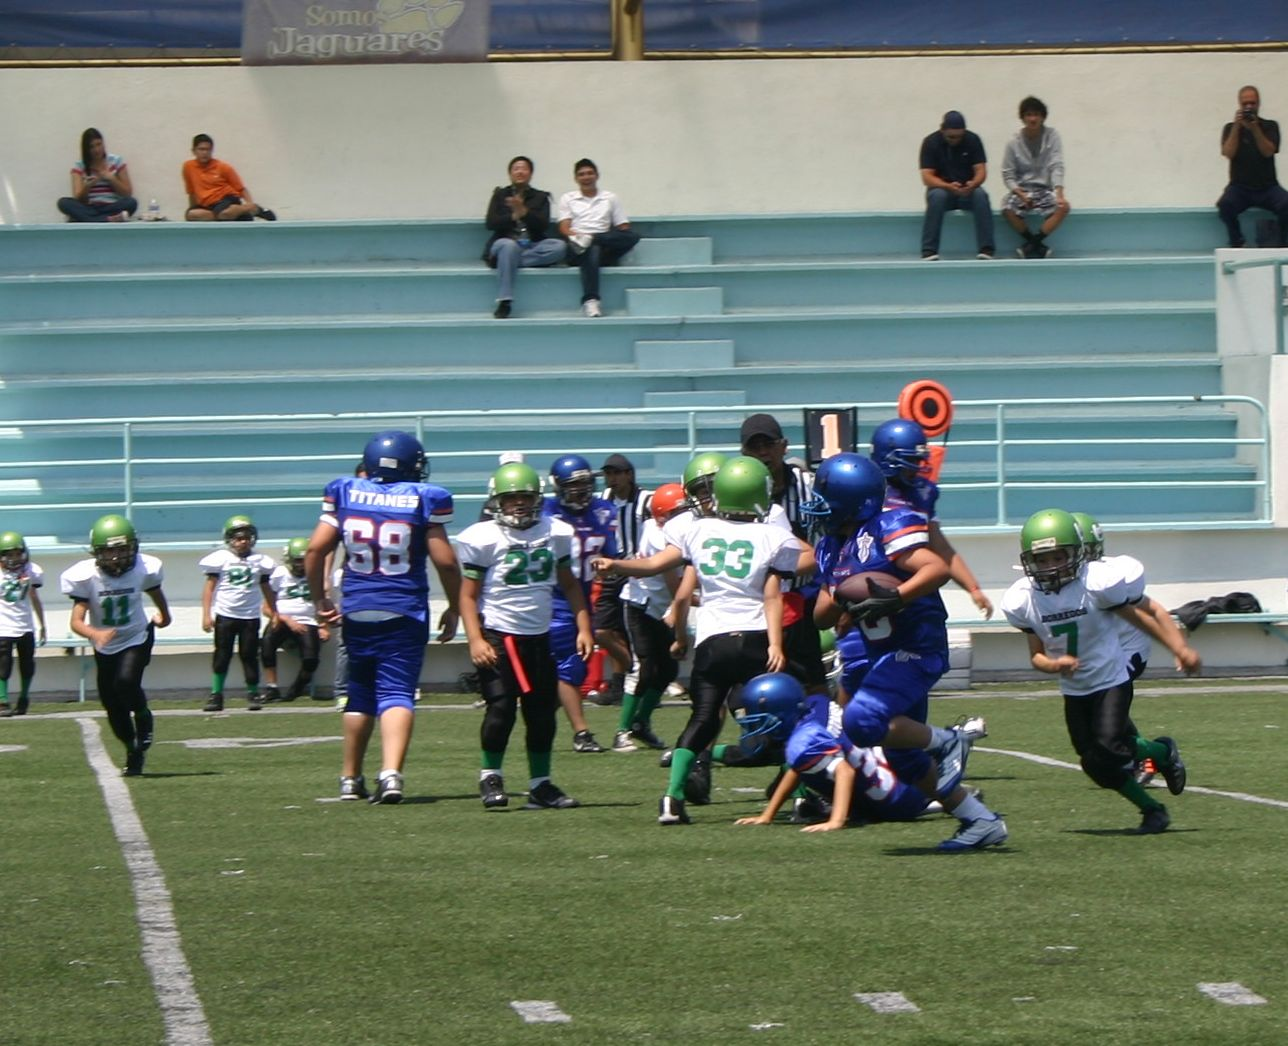 Borregos Salvajes vs. Titanes - Pre-Infantil (4-May-13) Q